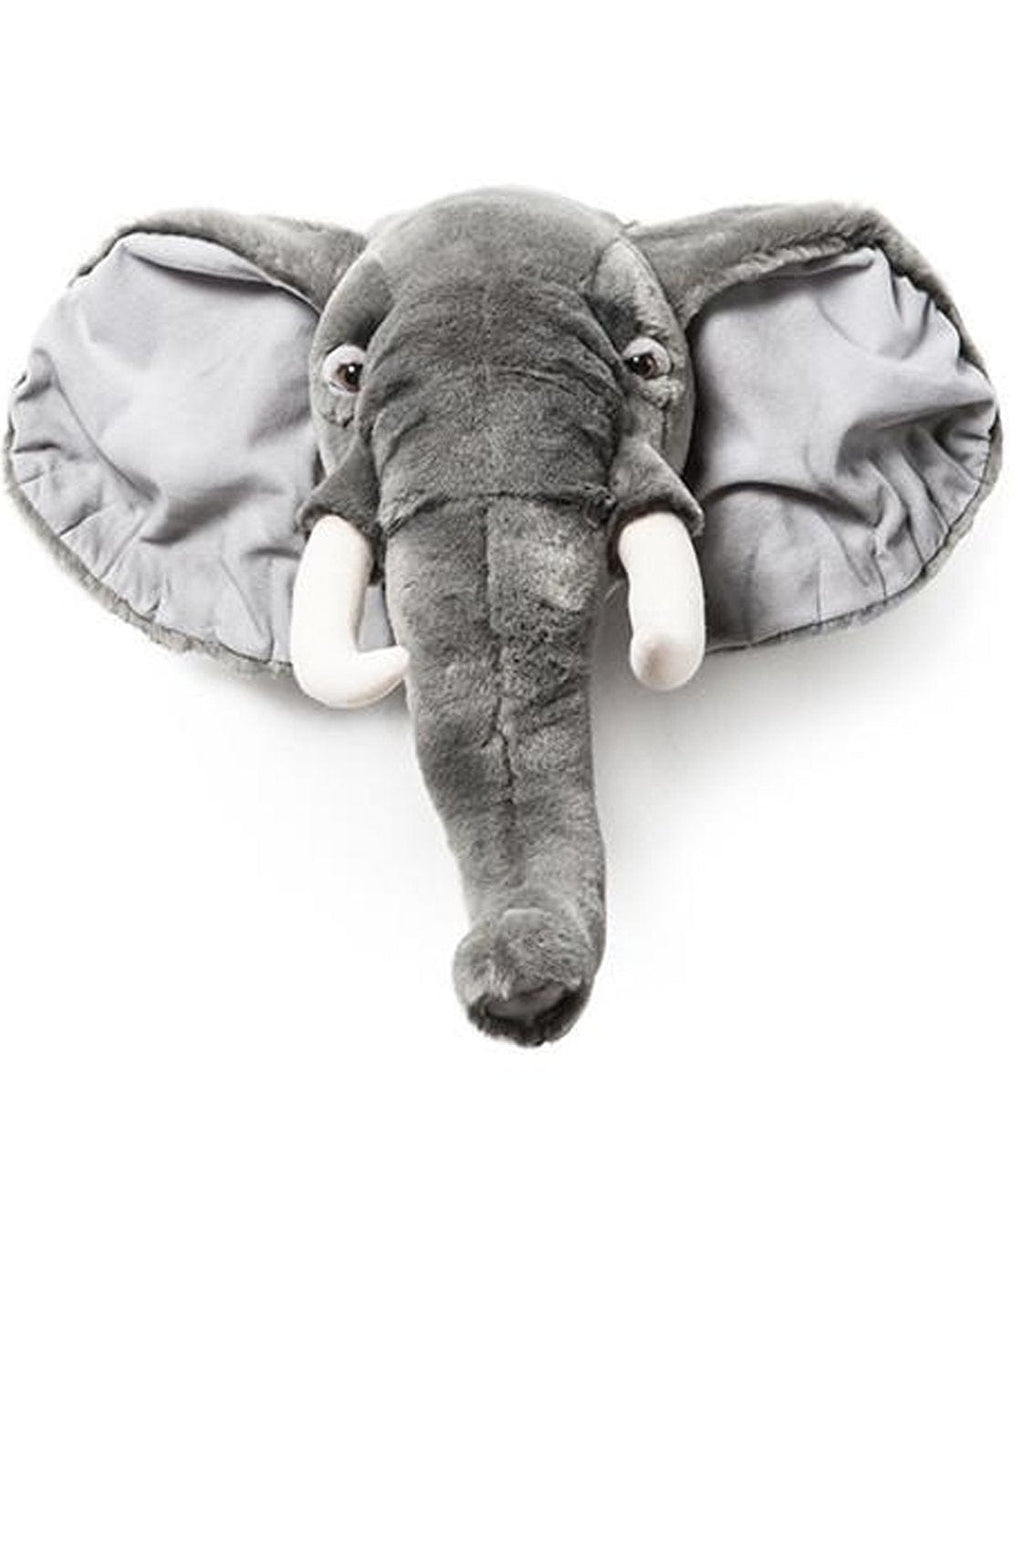 Wild and Soft Plush Wall Head George the Elephant (PRE-ORDER APRIL)